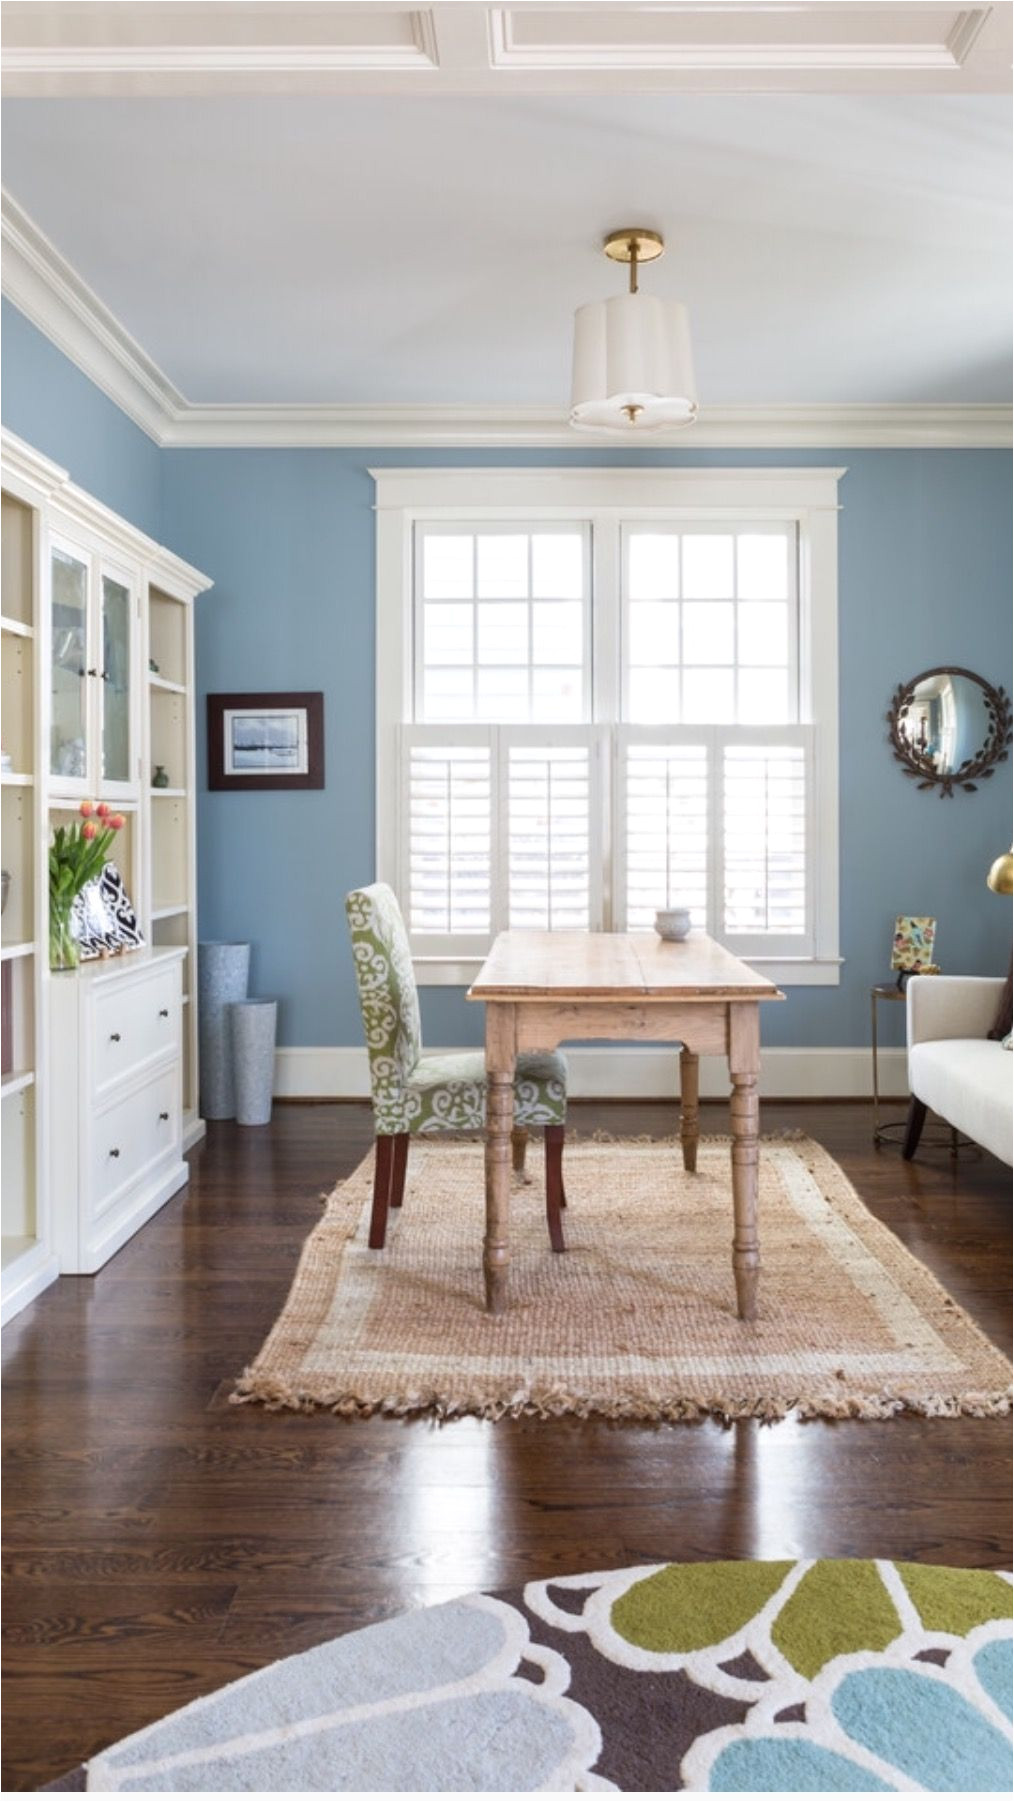 wall color santorini blue by benjamin moore room designed by liza holder homegrown decor seen on houzz